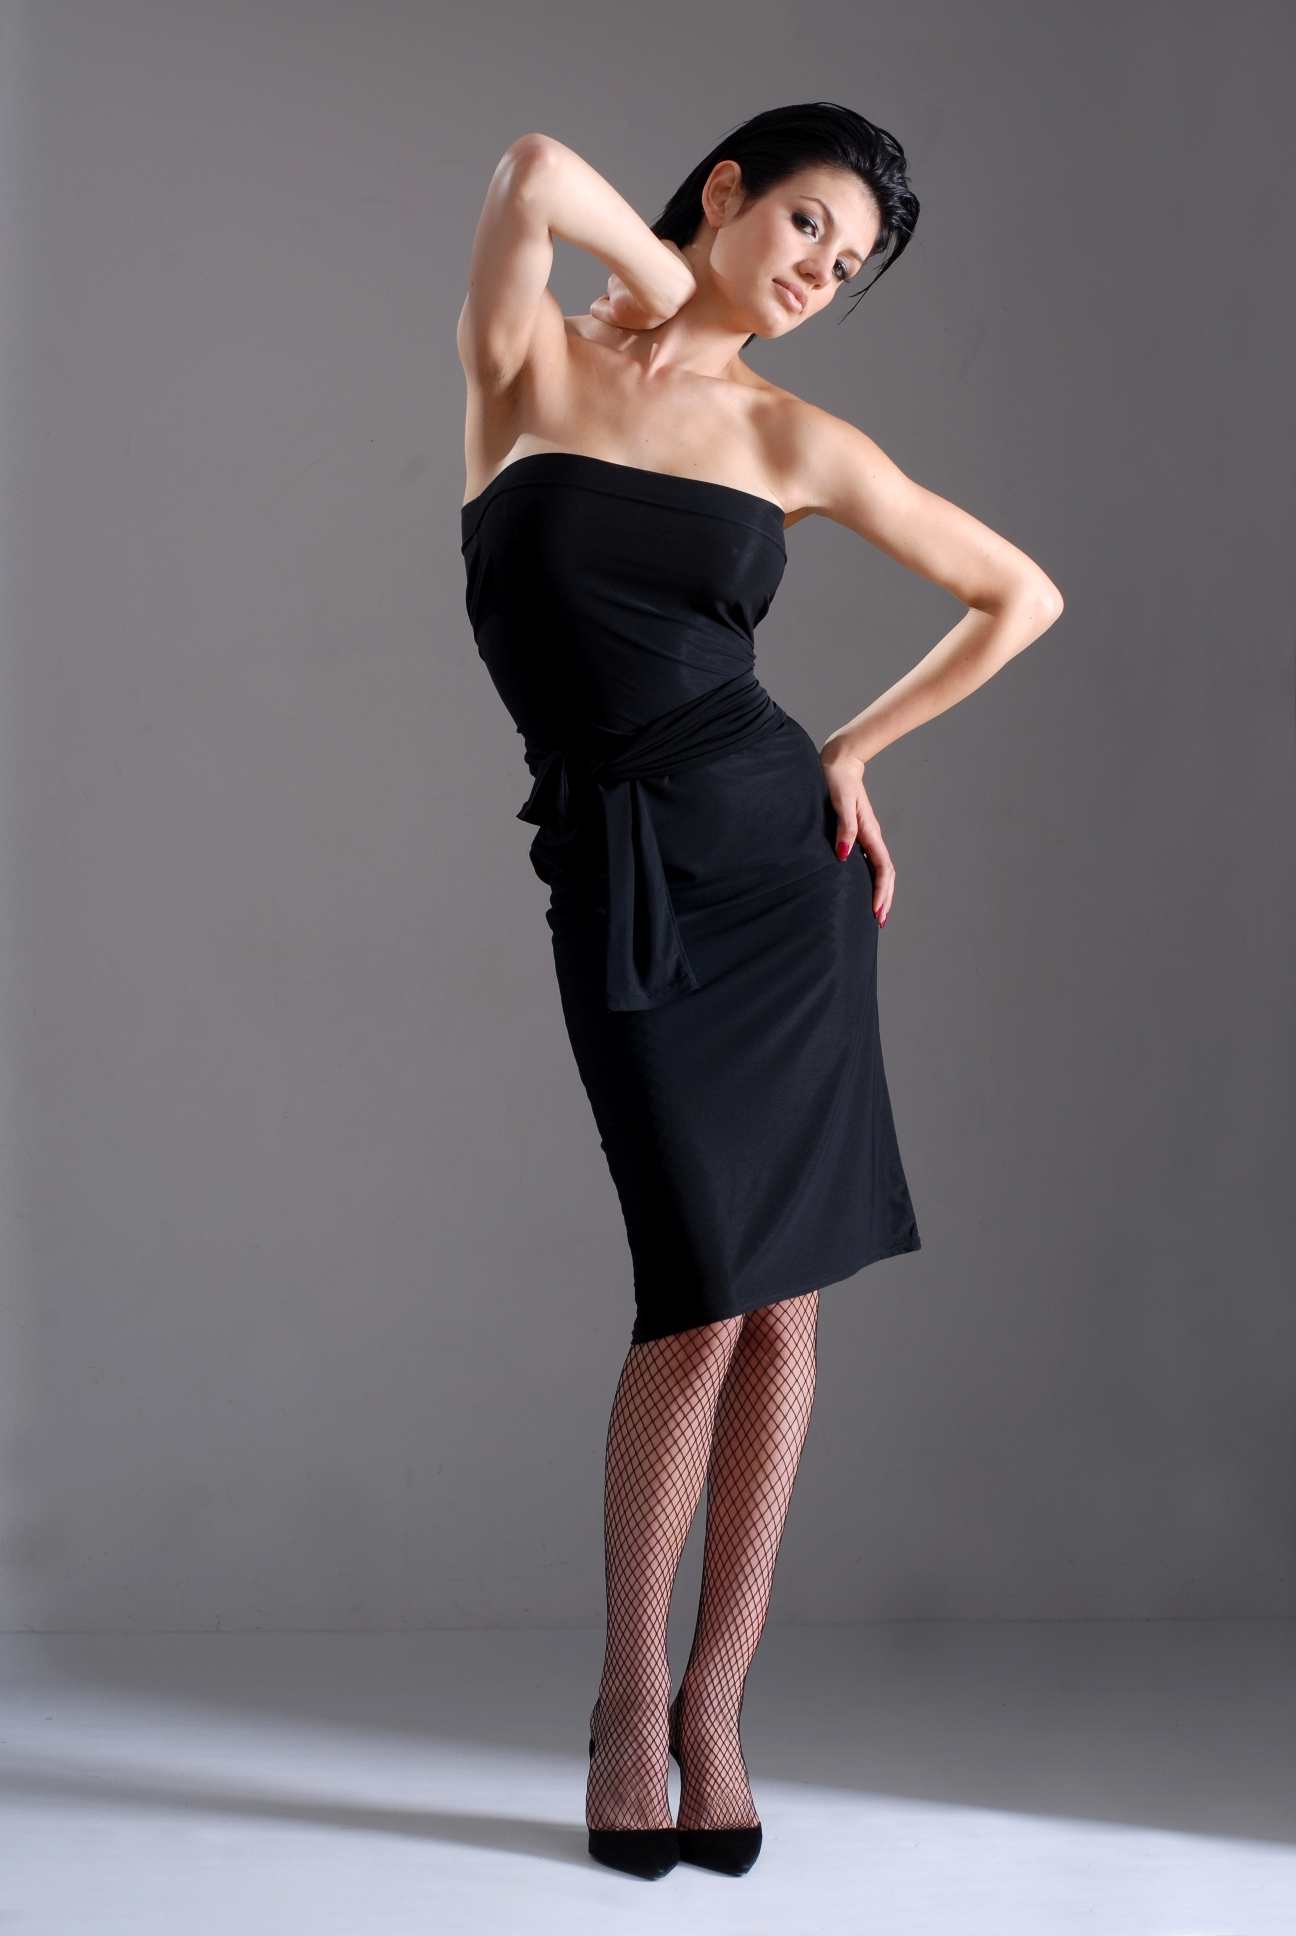 Gerardo Privat Little Black Dress 2010